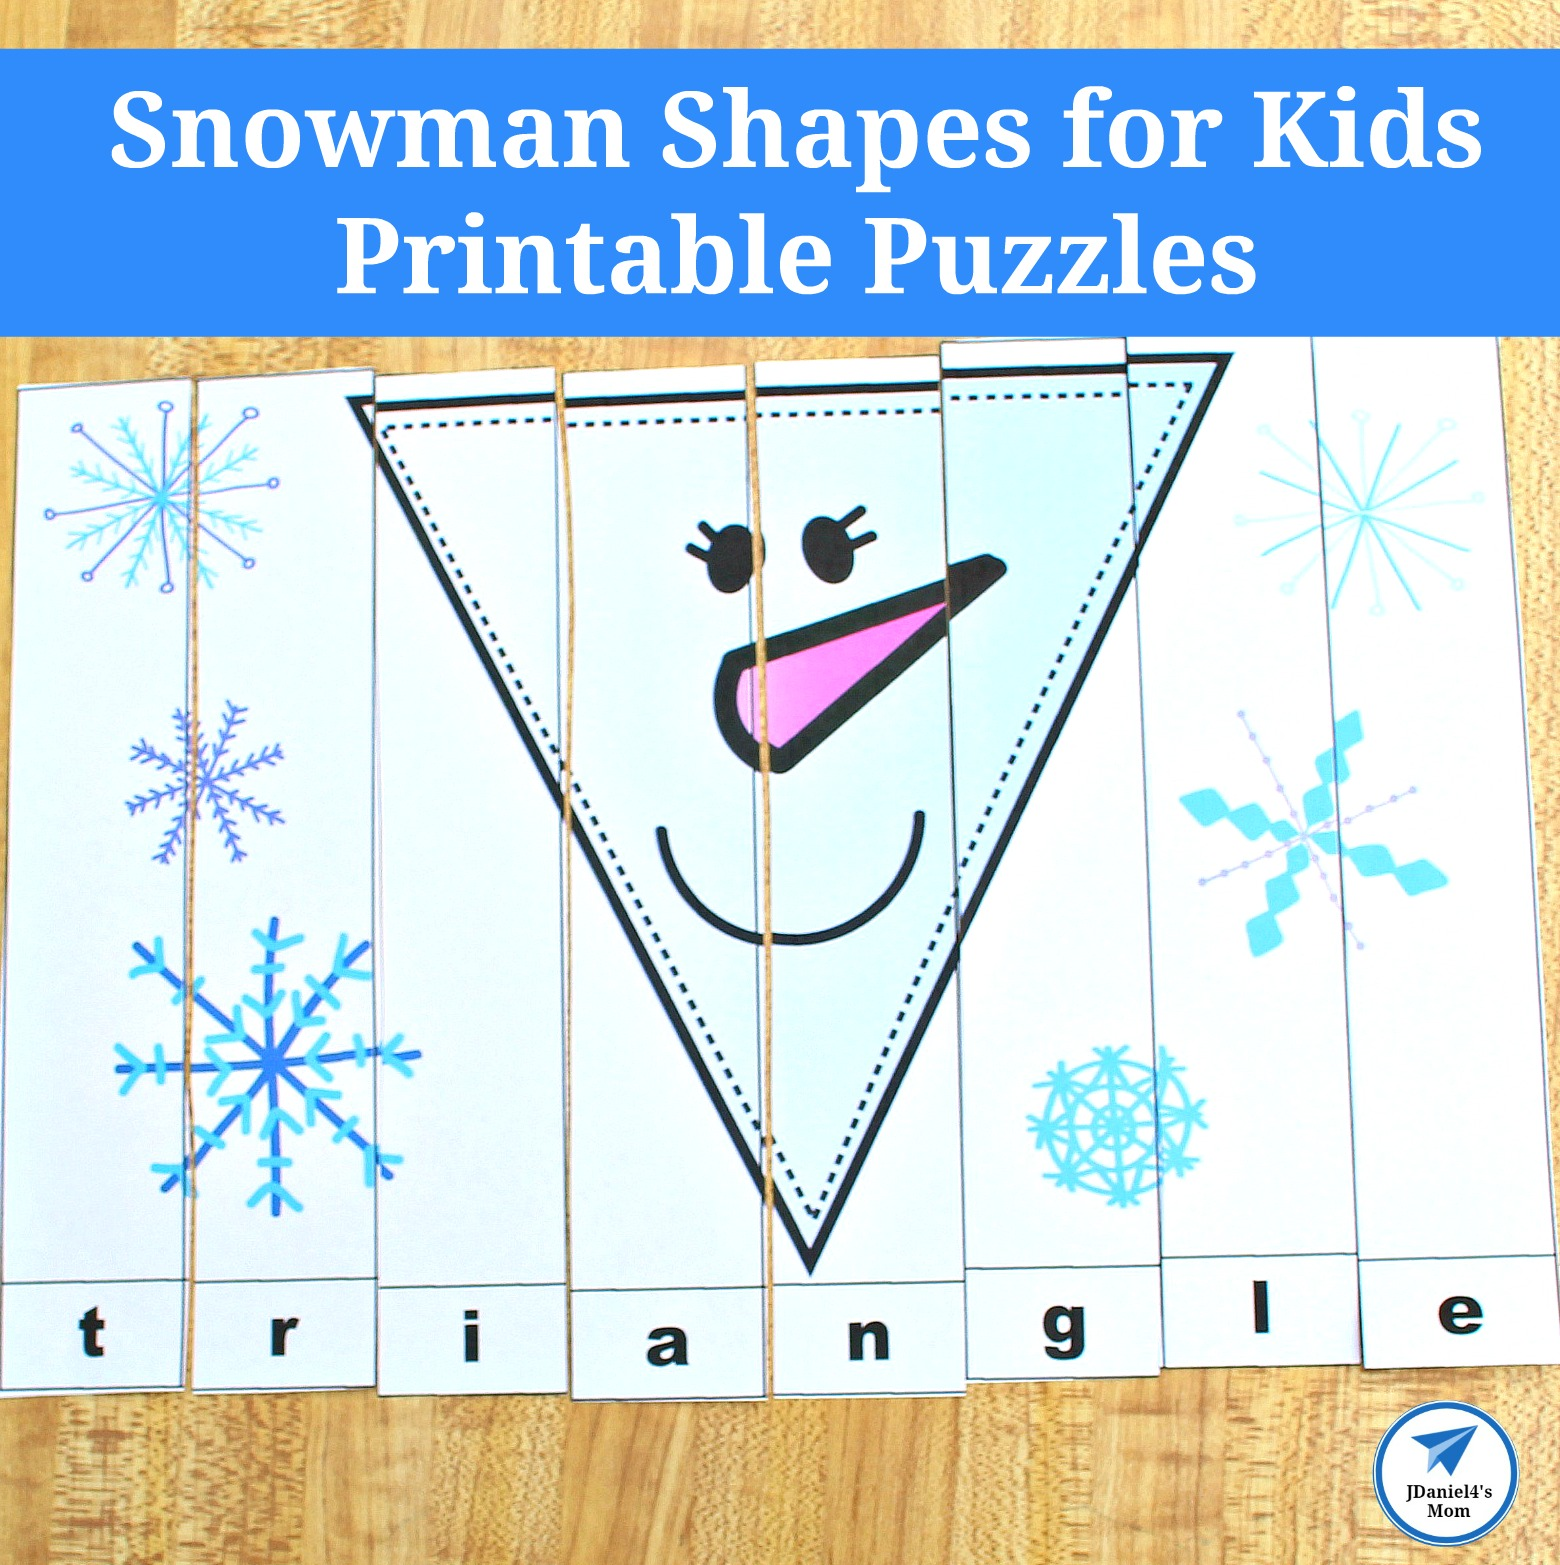 picture about Puzzles for Kids Printable referred to as Snowman Styles for Youngsters Printable Puzzles - JDaniel4s Mother